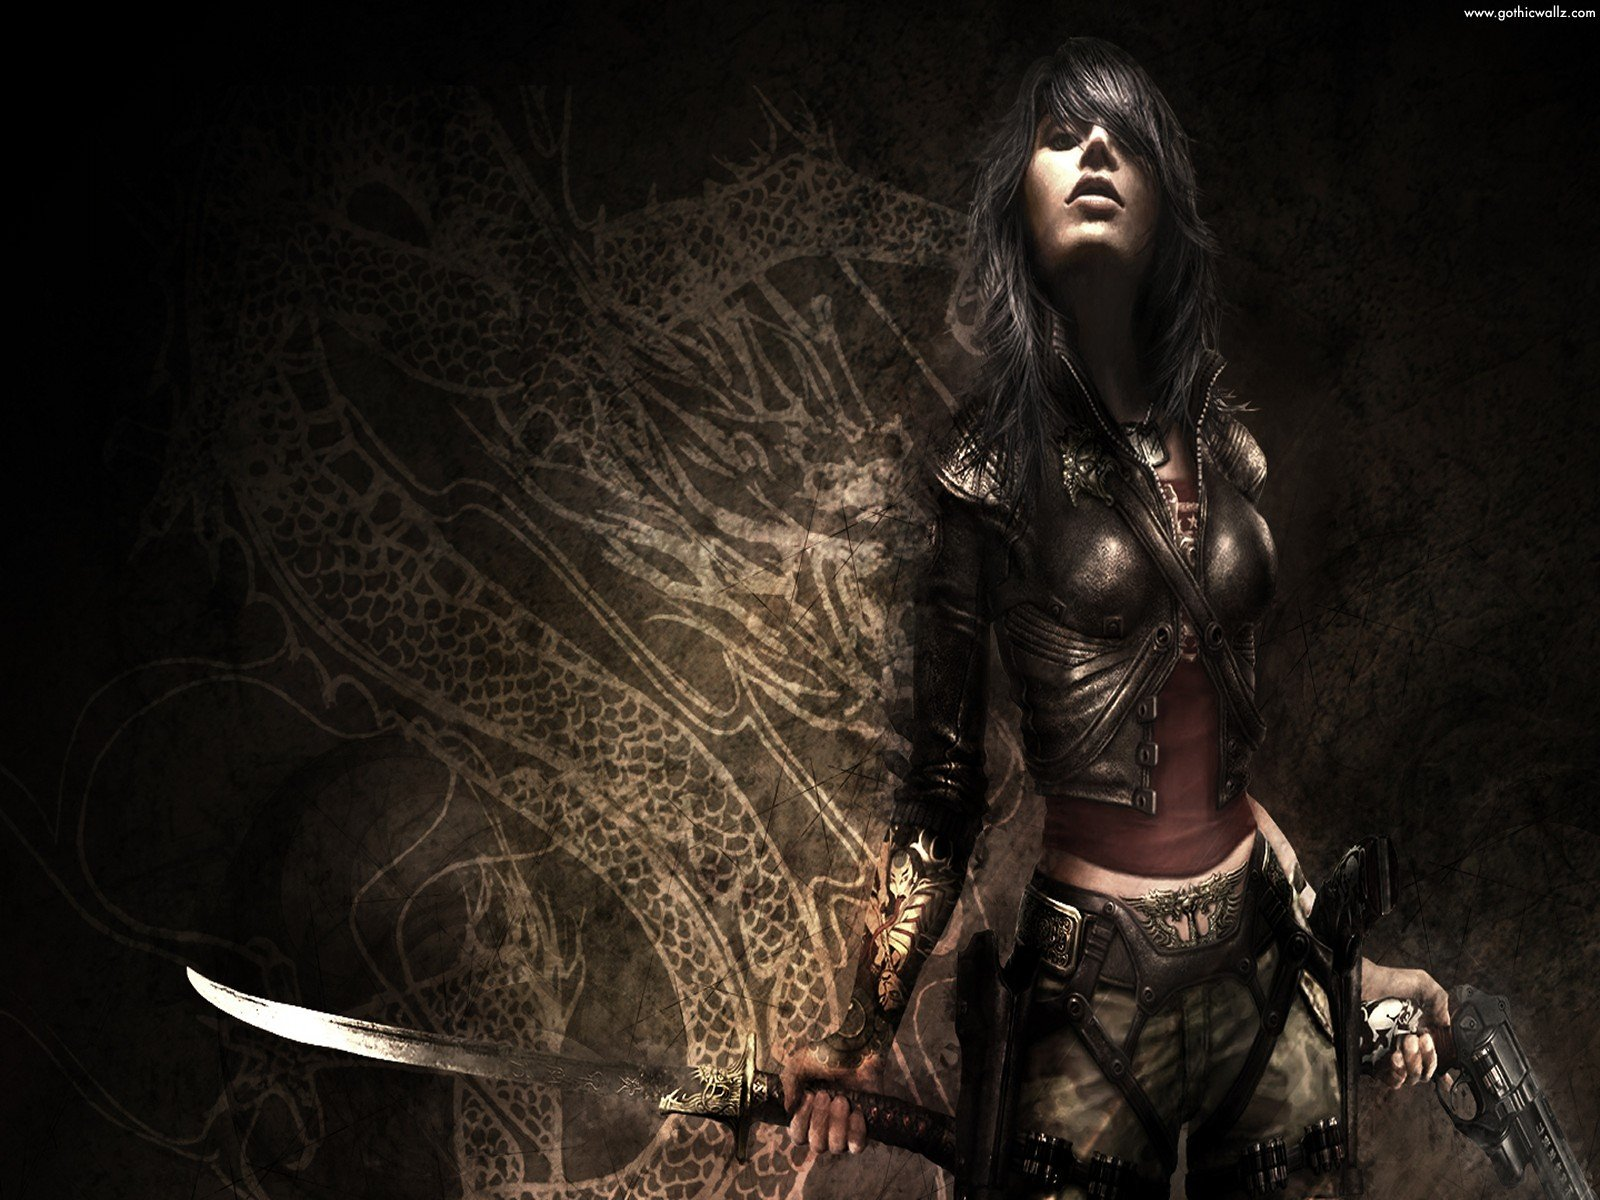 Gothic Wallpapers 10   Dark Gothic Wallpapers   FREE Gothic Wallpaper 1600x1200